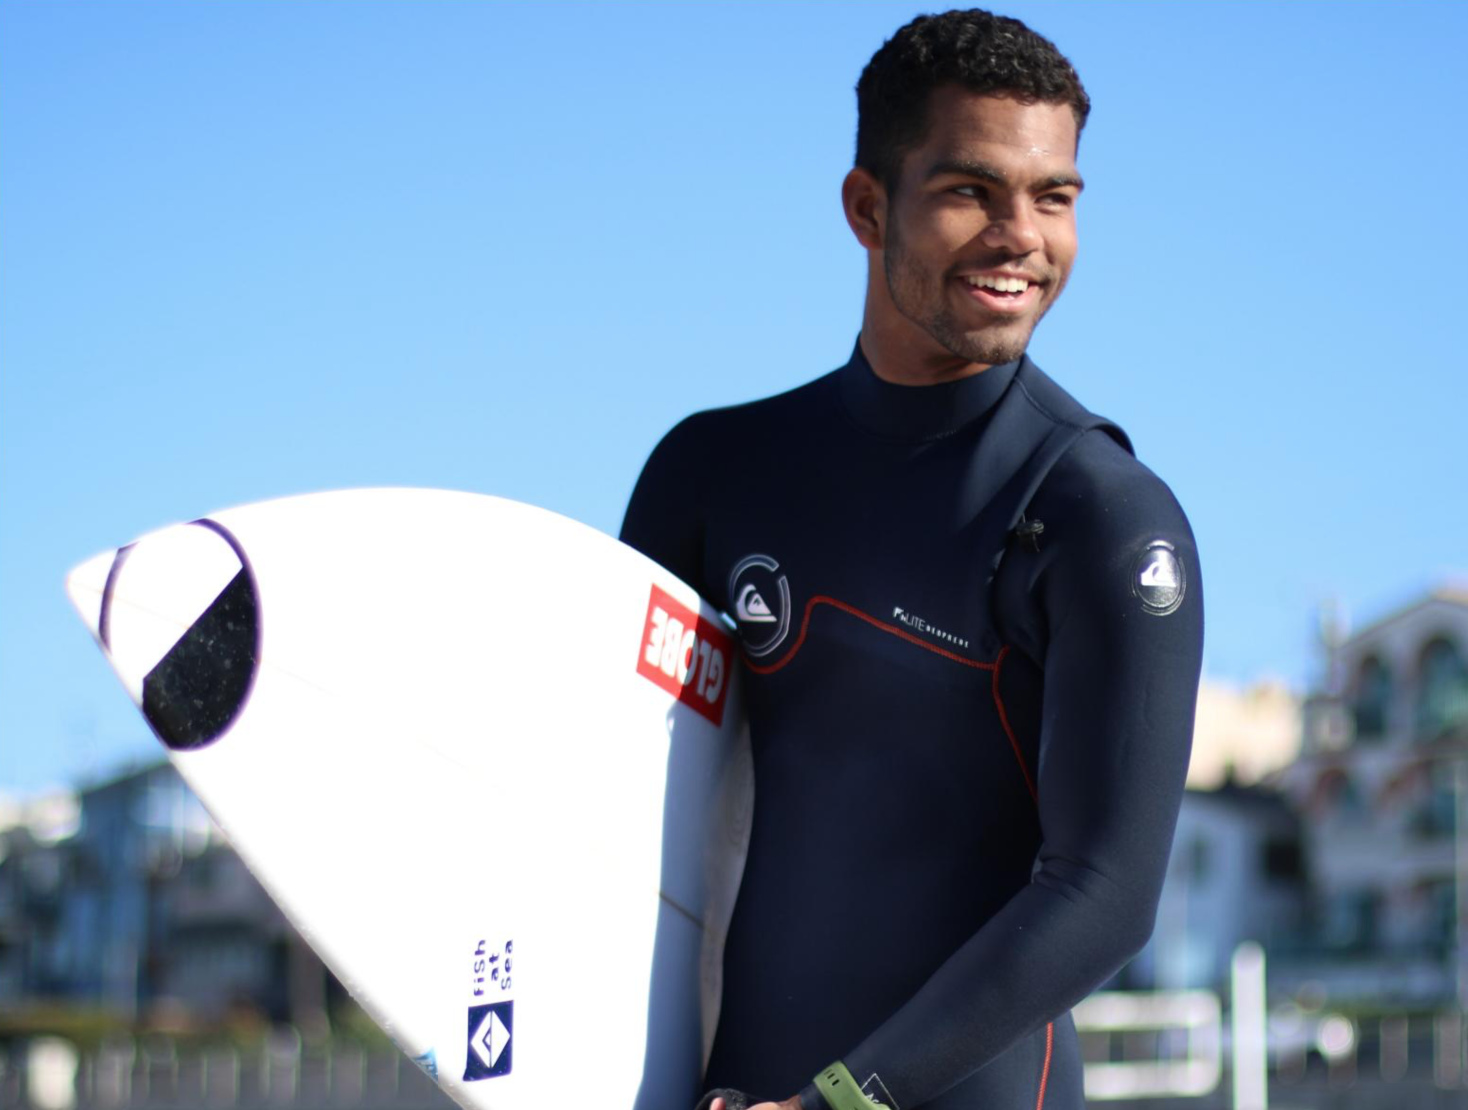 Hunter Jones with his surfboard, at El Porto in Manhattan Beach. Jones, now a former El Camino College student, is set to appear in the latest season of